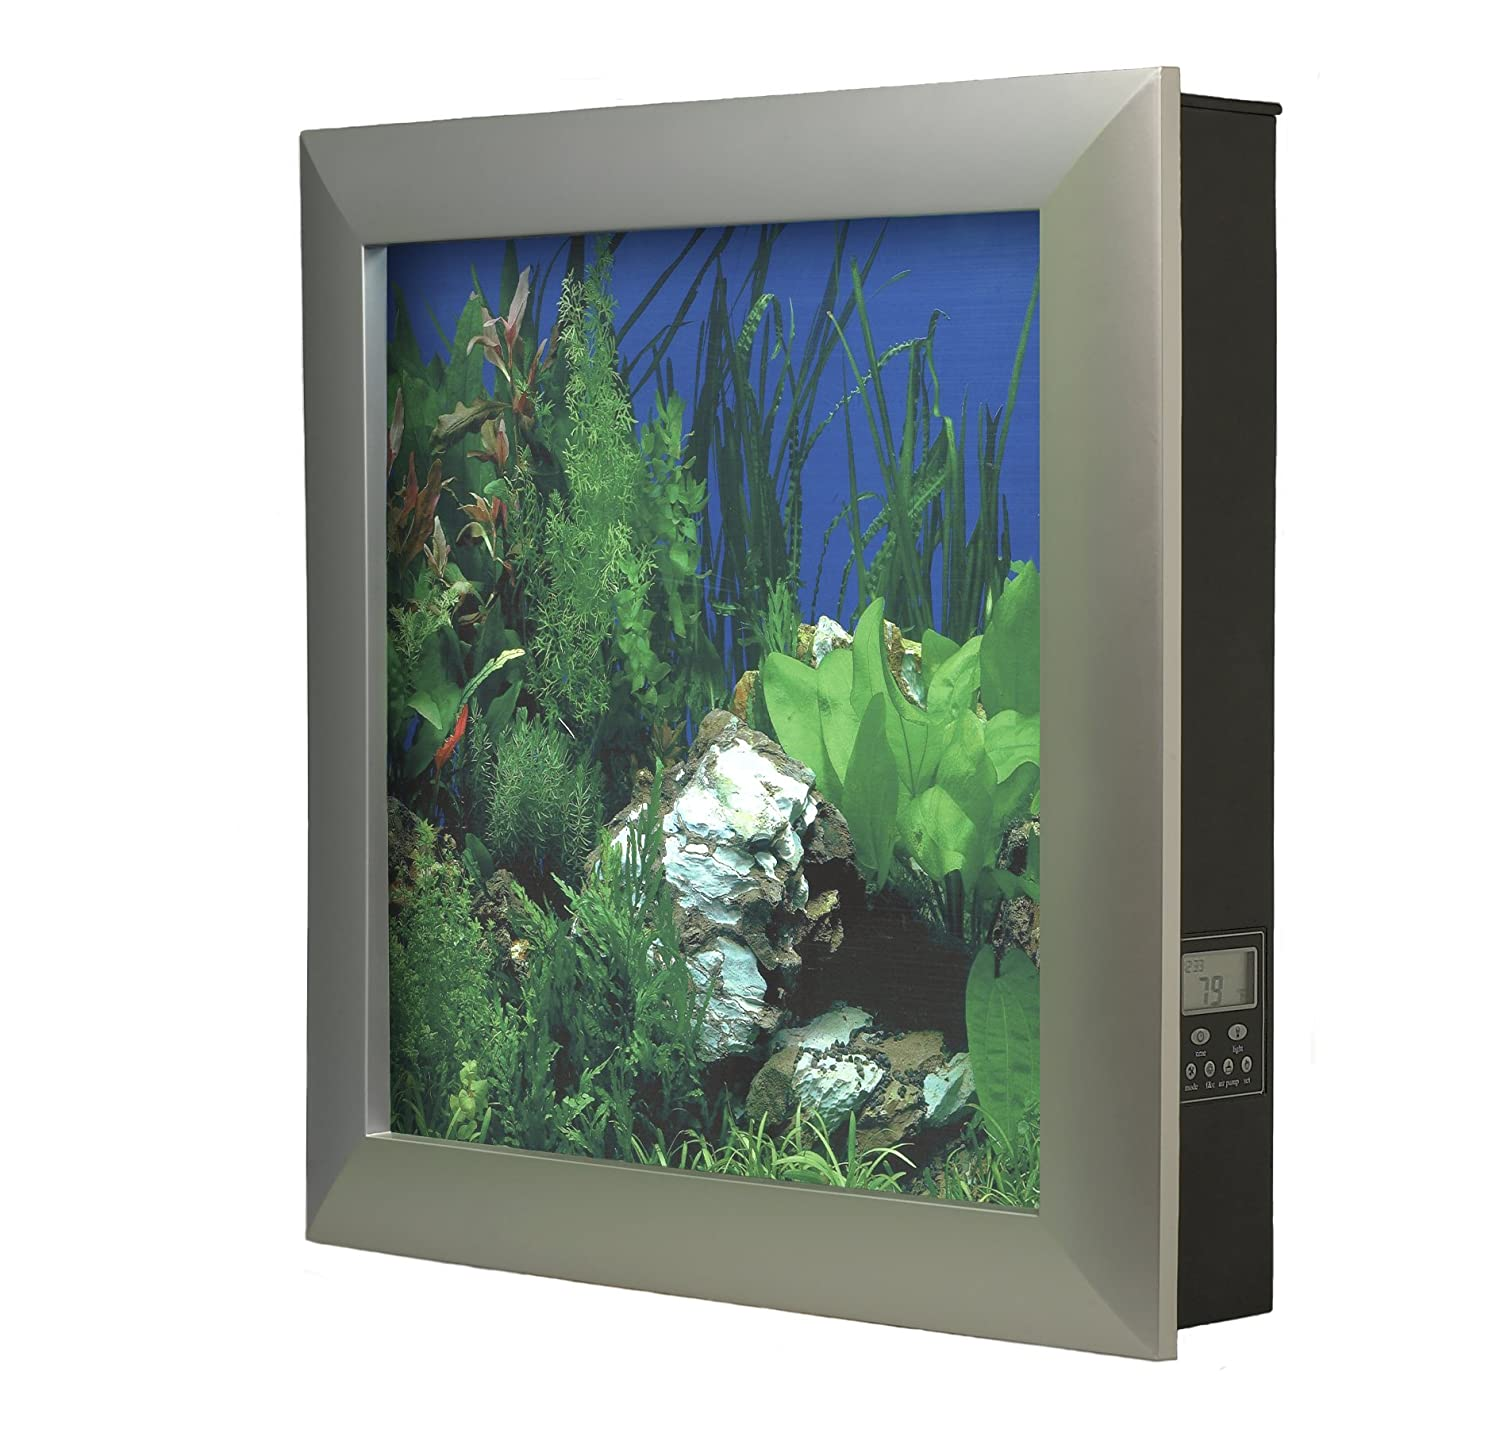 Amazon aquavista 500 wall mounted aquarium with whitestone amazon aquavista 500 wall mounted aquarium with whitestone background black frame home decor wall art pet supplies jeuxipadfo Images